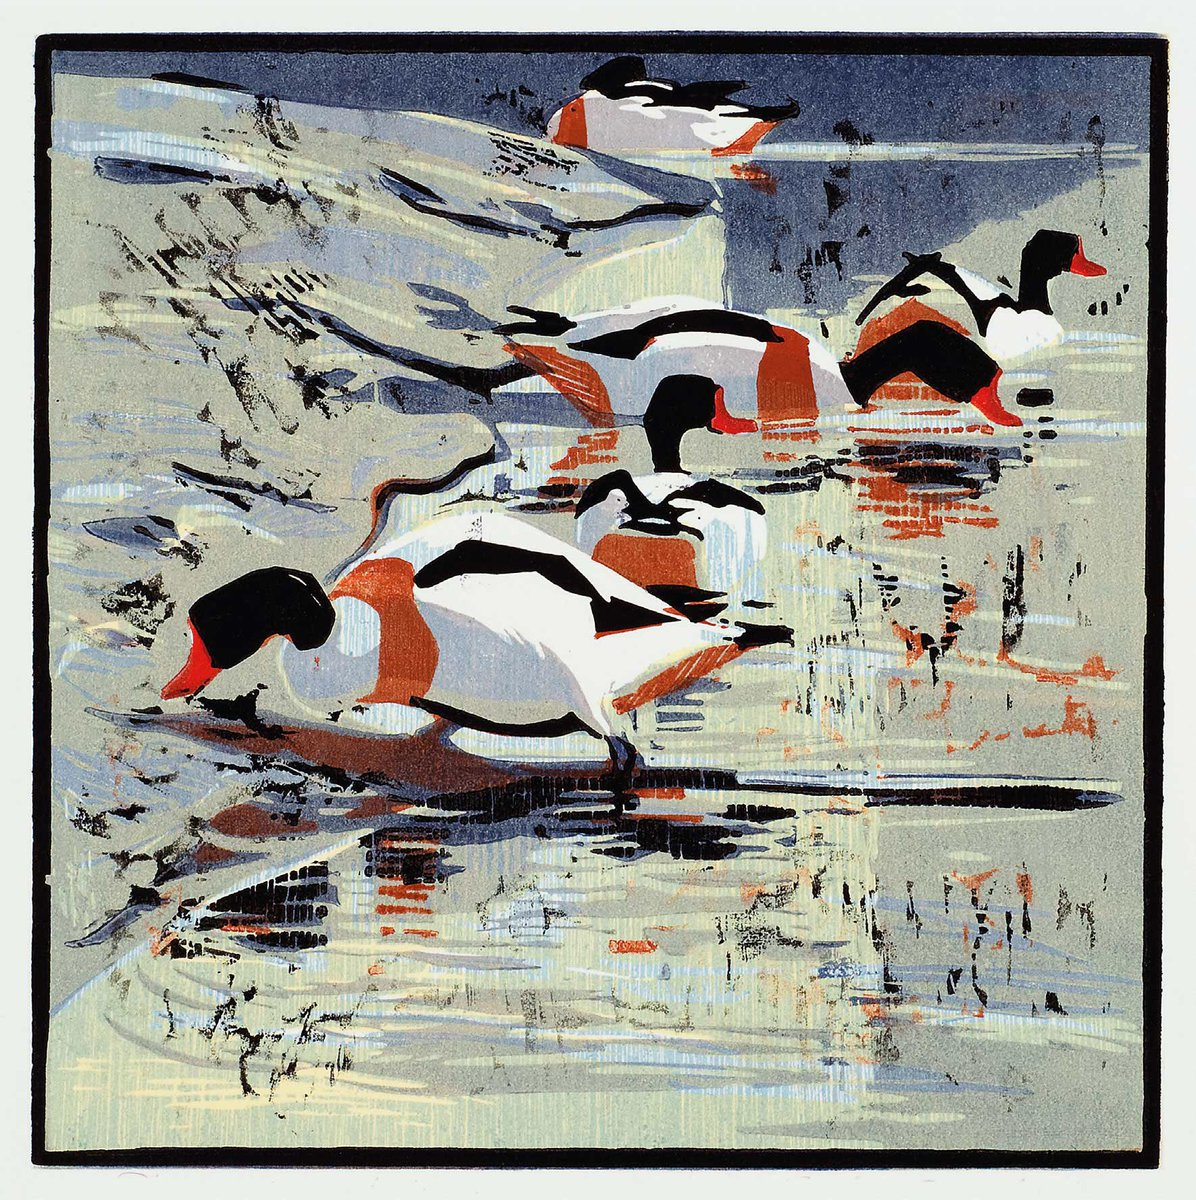 Beautiful cards from #woodcuts by Robert Greenhalf #shelduck #spoonbill #birds #art #greetingcards #robertgreenhalf  https://www. dryredpress.com/collections/pr intmakers-and-illustrators-robert-greenhalf/products/whooper-swans-and-pochards?variant=12533433987 &nbsp; … <br>http://pic.twitter.com/bDiEhLgTj5